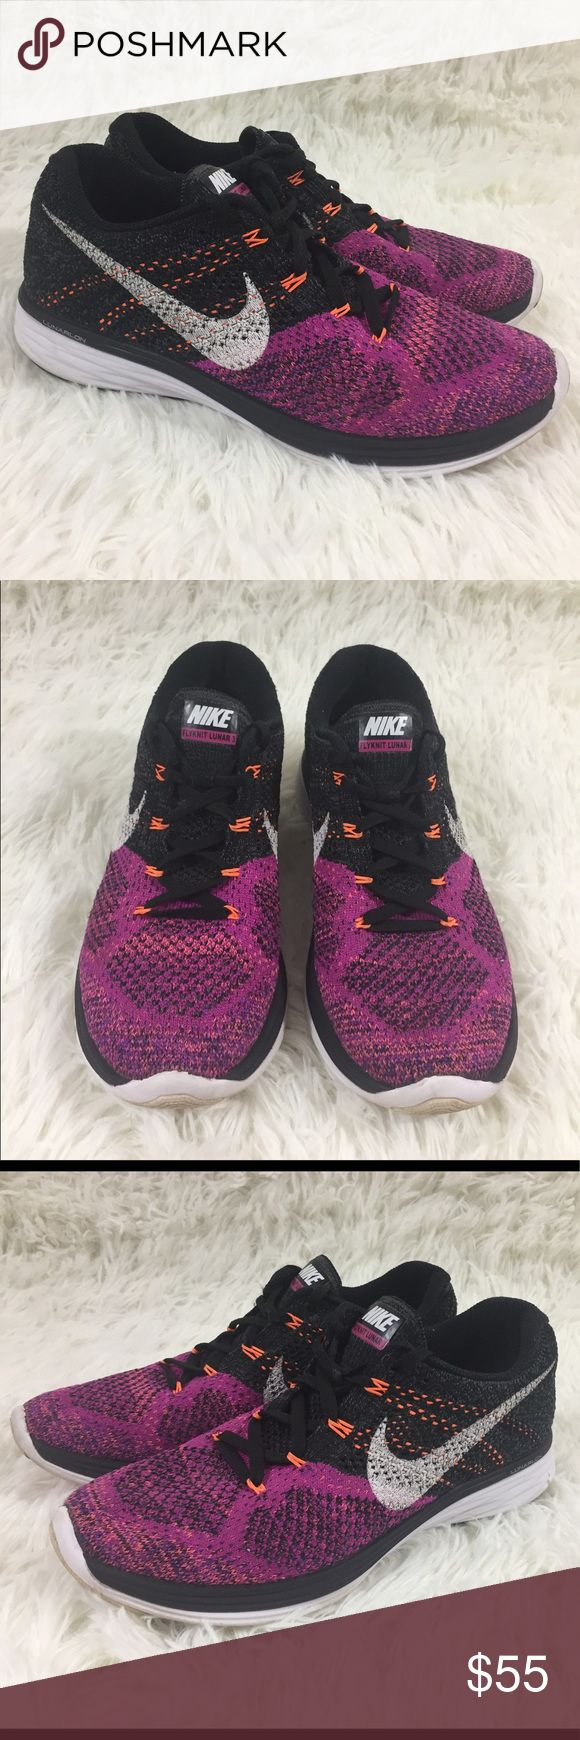 Nike Flyknit Lunar 3 athletic shoes size 7.5 Super cute pre-owned Nike Flyknit Lunar 3 pink orange and black running athletic shoes size 7.5. The outside of the shoes look great, the soles show wear so please see pic of soles. Please ask all questions before purchasing. Nike Shoes Athletic Shoes